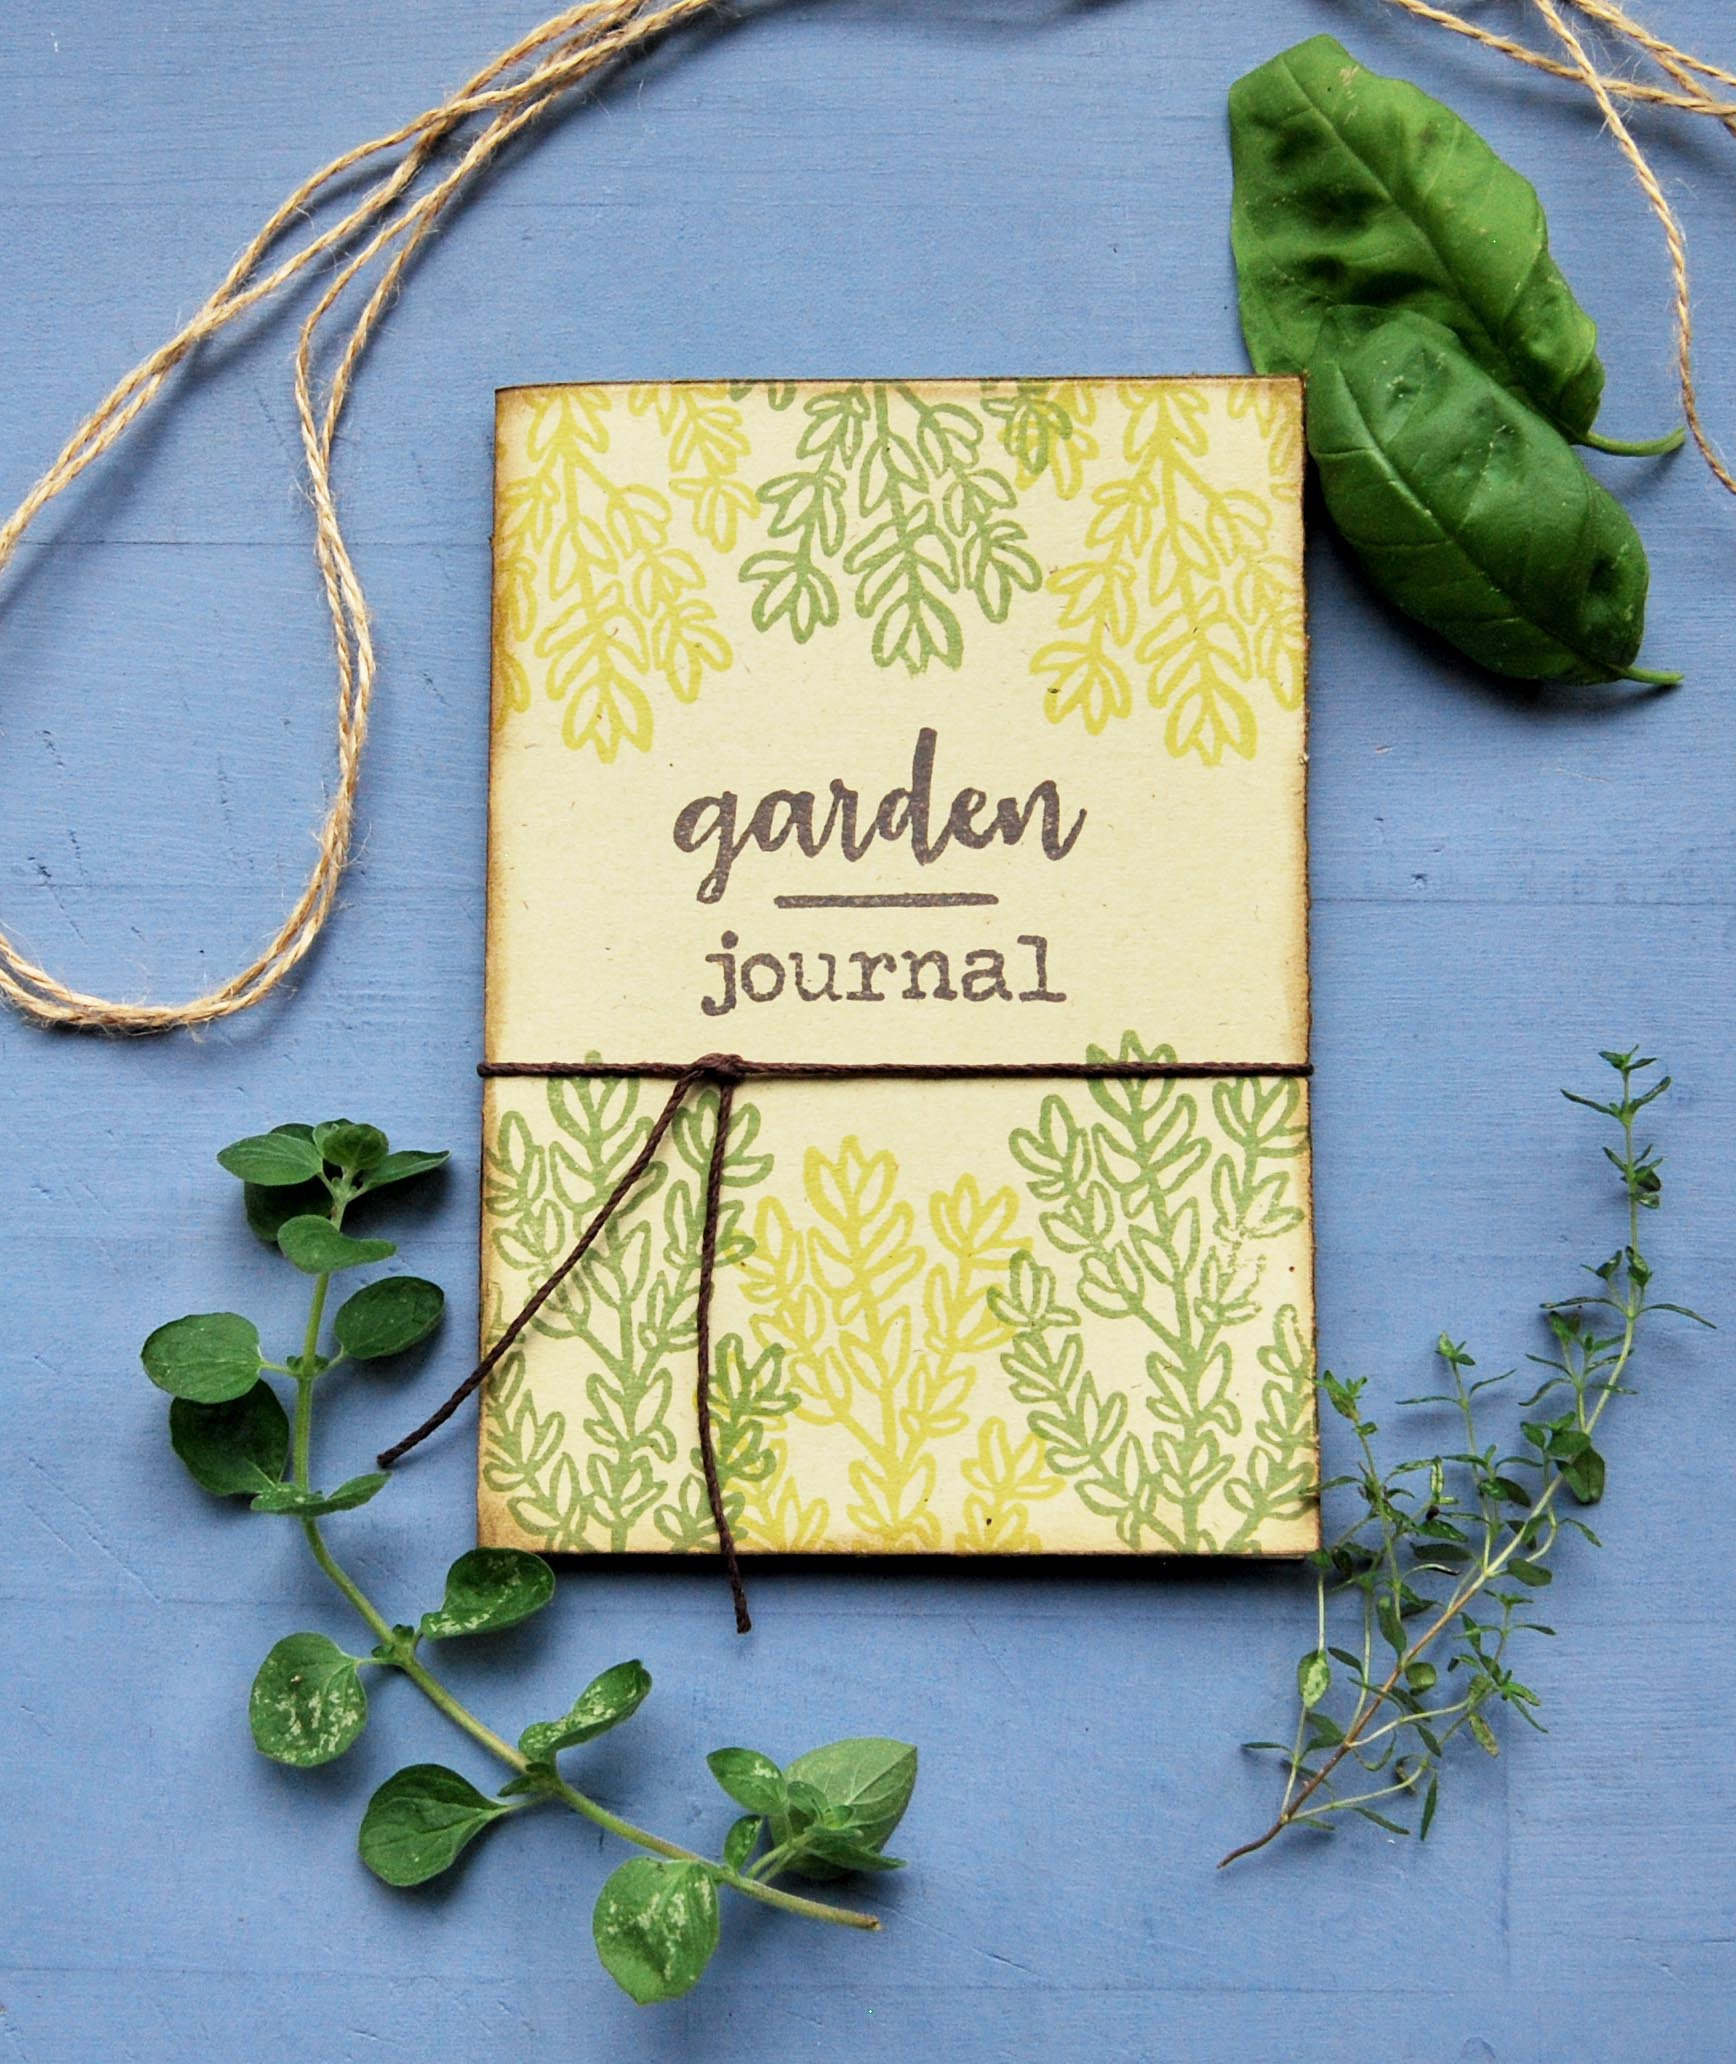 Taccuino Gardening journal